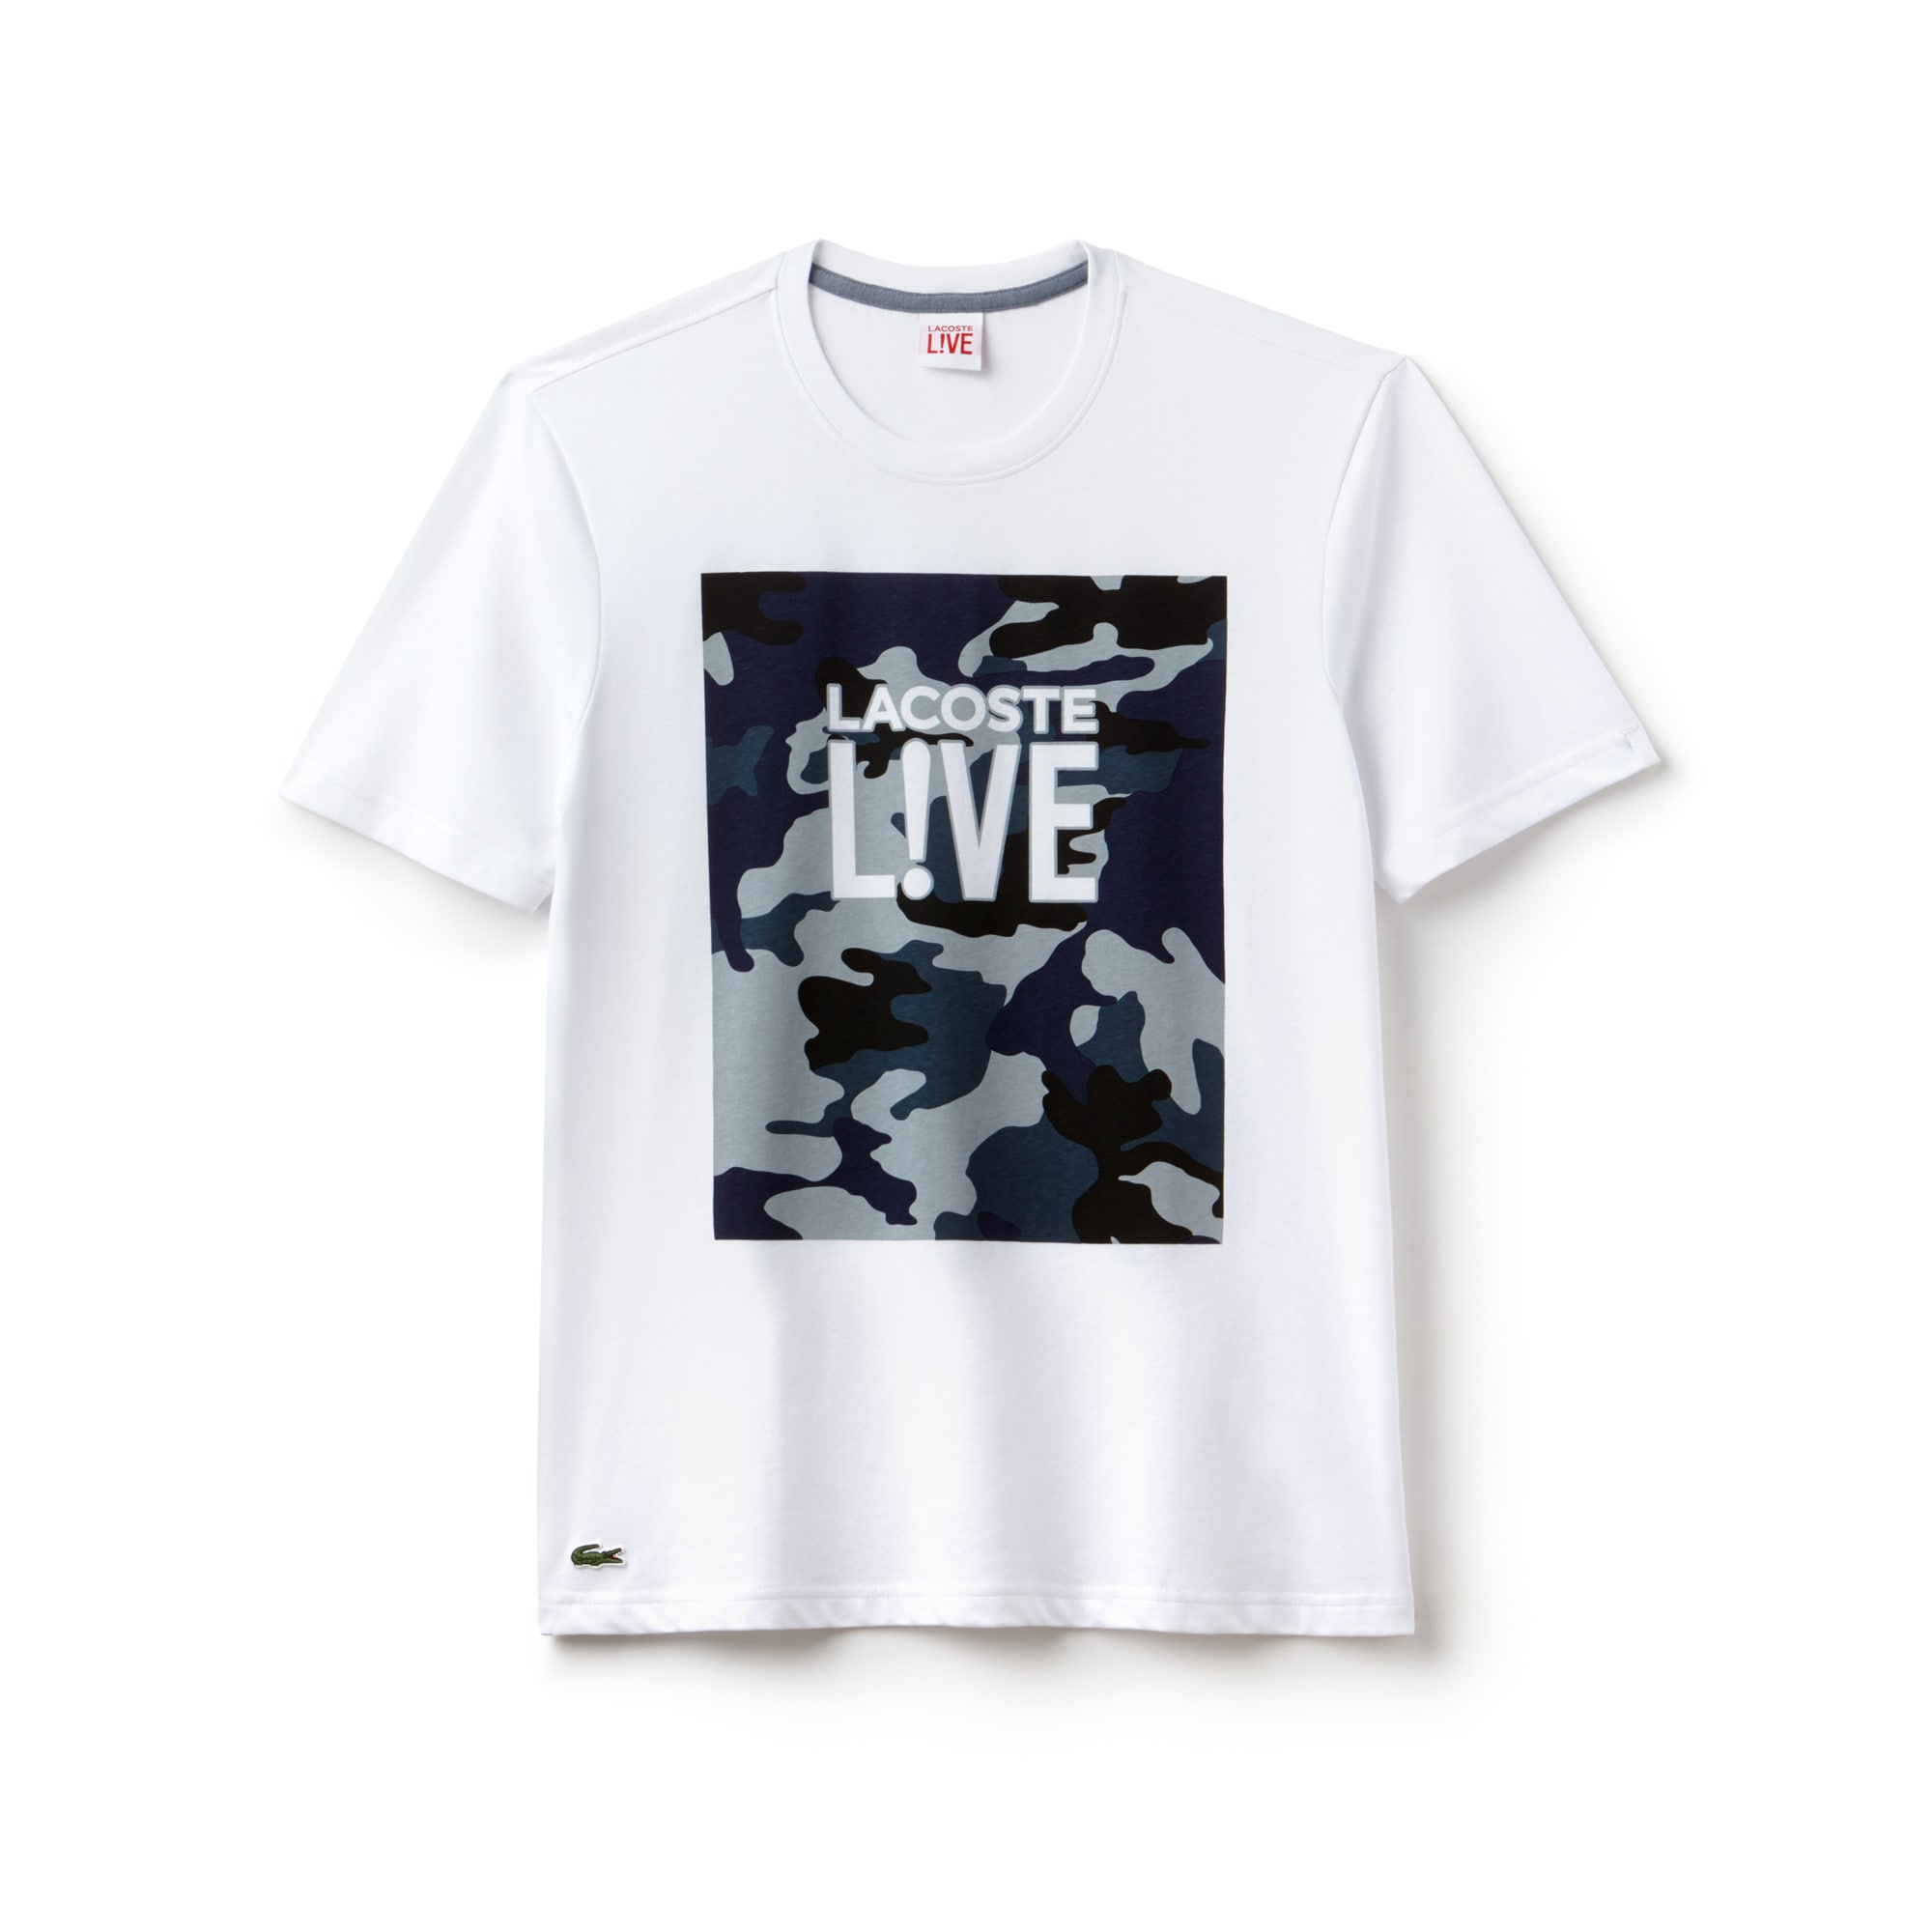 Men's Lacoste LIVE Crew Neck Print Design Jersey T-shirt